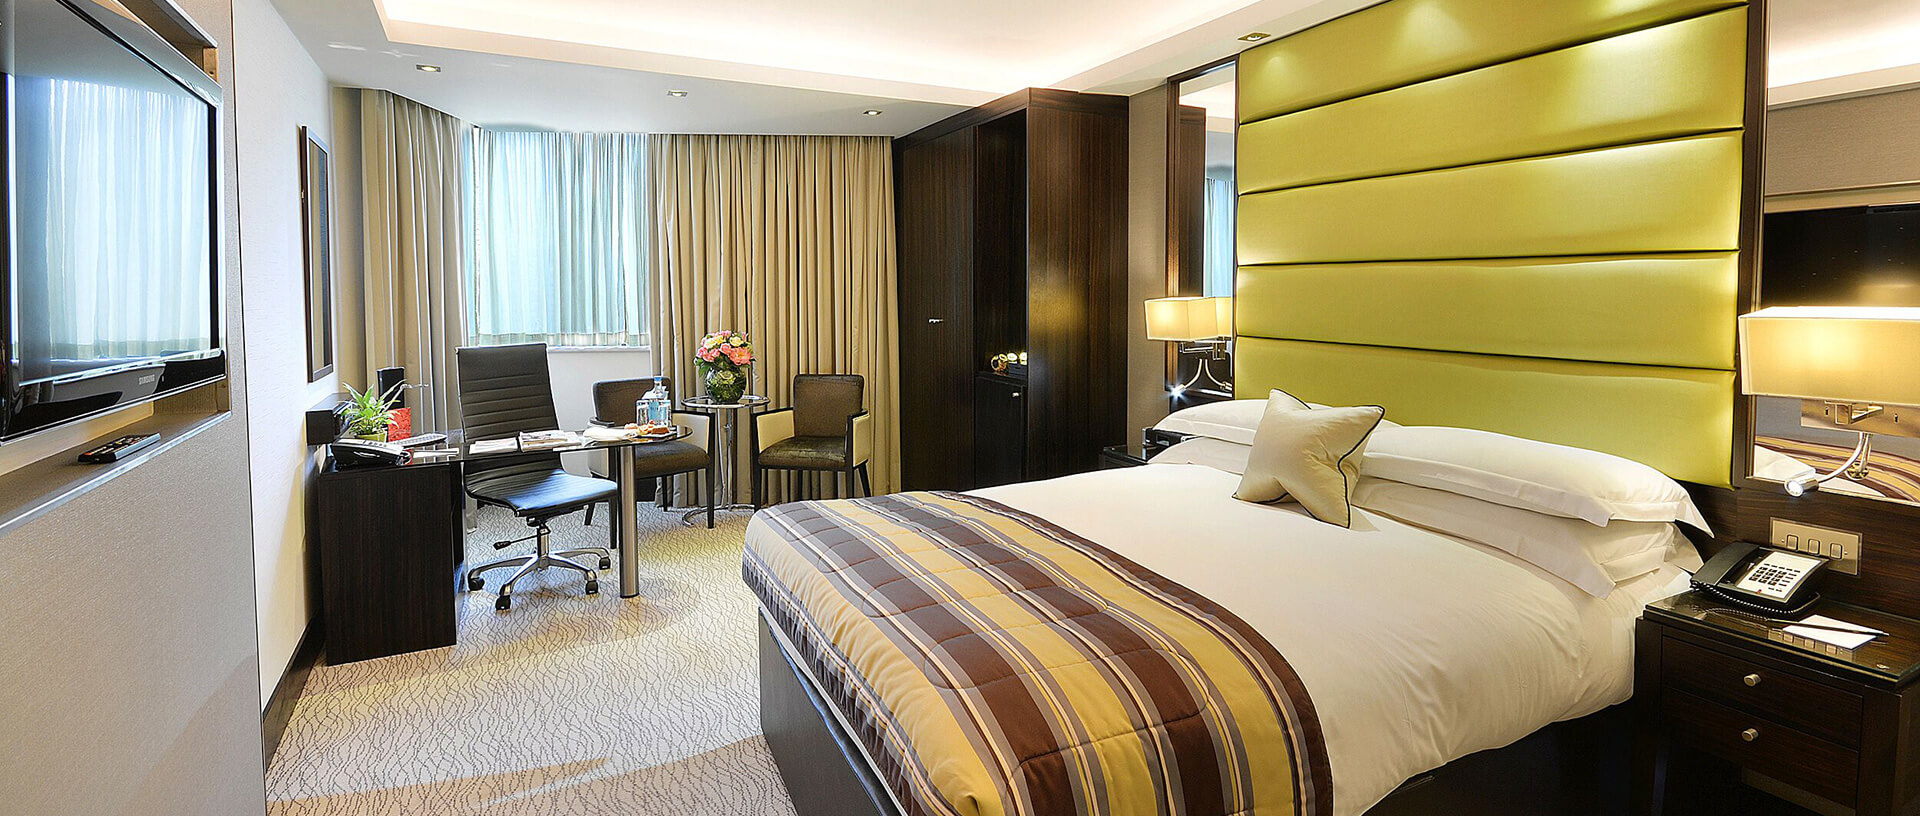 The Executive Club at The Montcalm Marble Arch